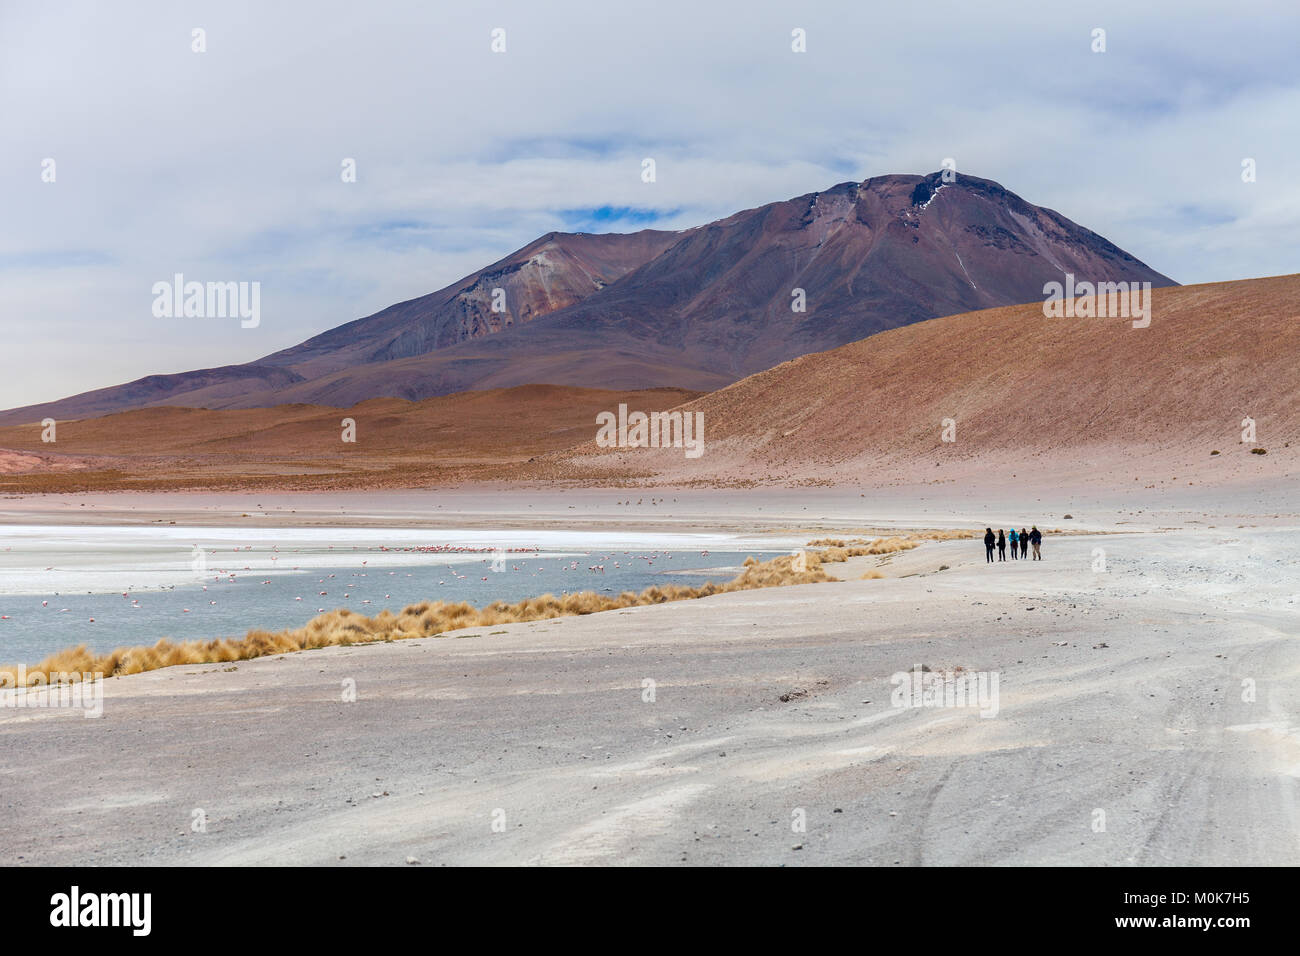 Laguna Hedionda located in the Bolivian altiplano near the Uyuni Salt Flat in Bolivia, South America Stock photo - Stock Image